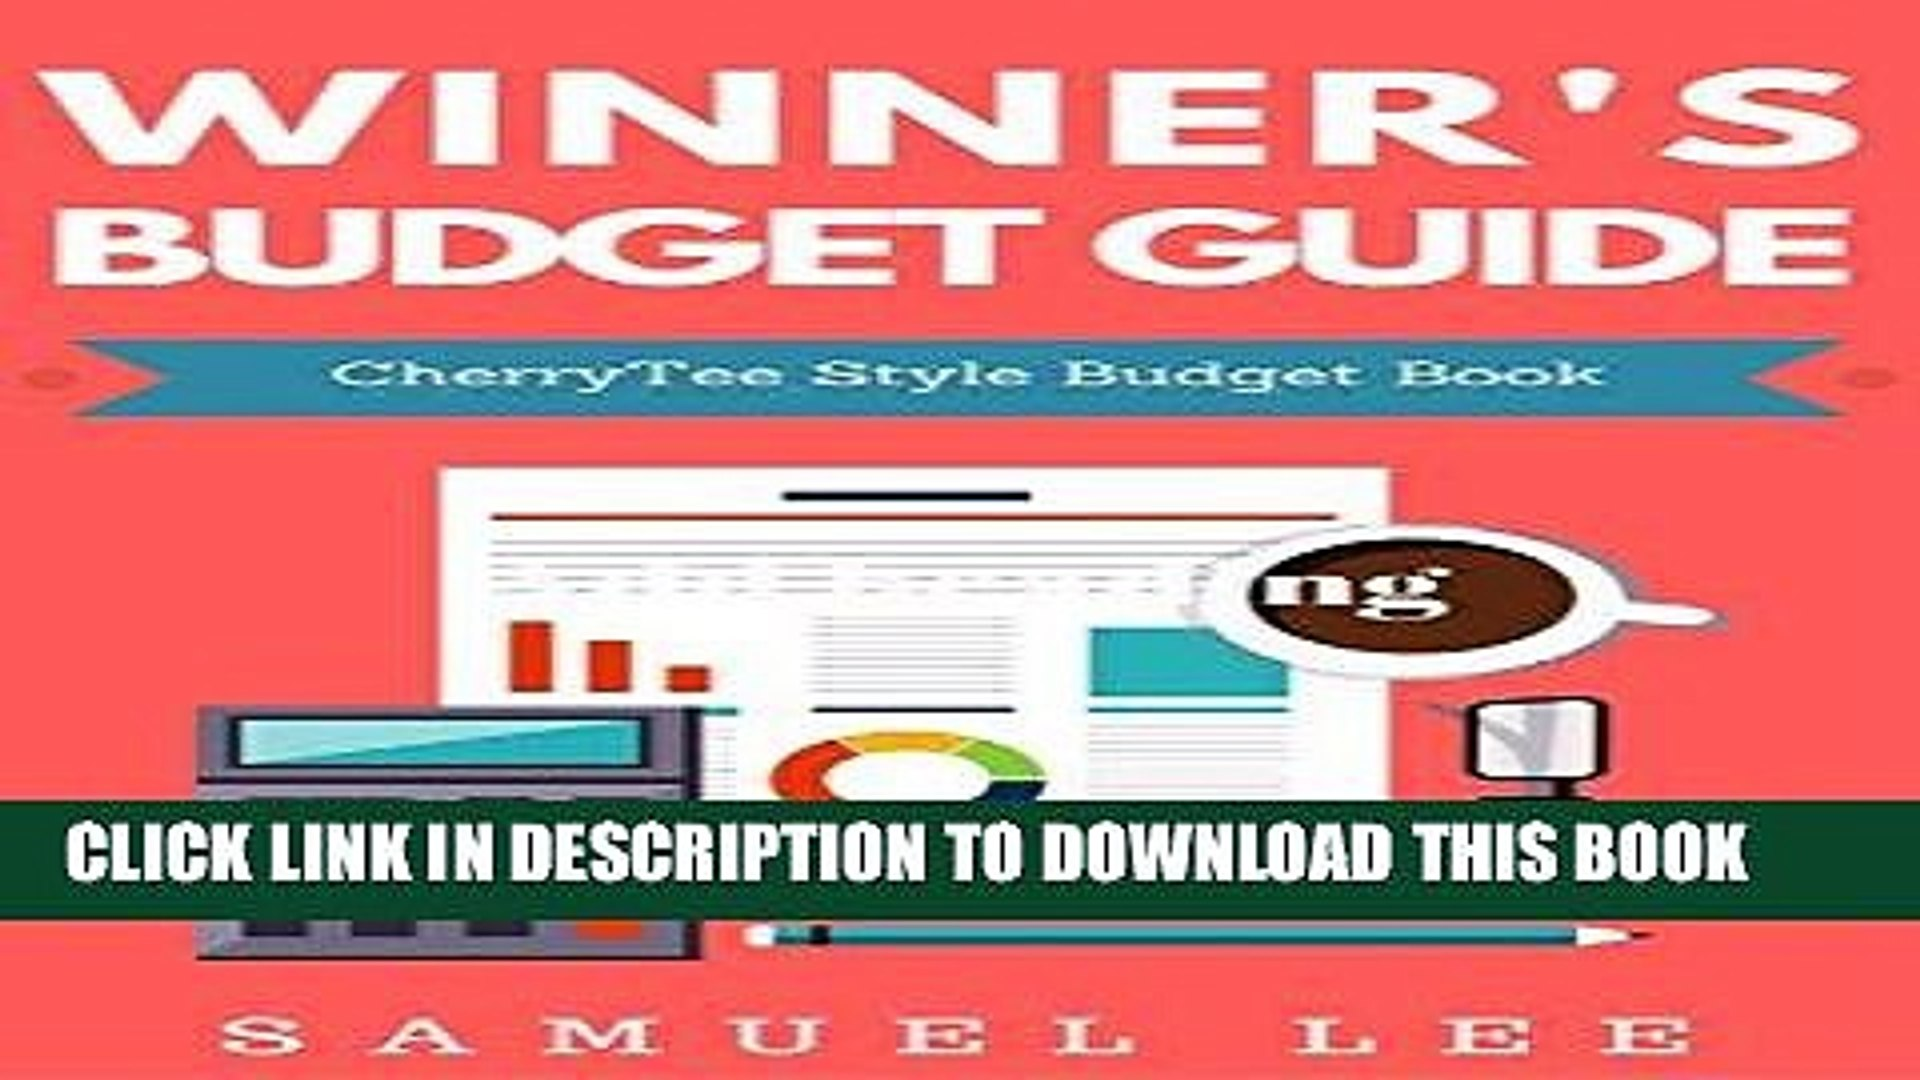 [New] Ebook How To Budget: Winner s Budget Guide CherryTree Style(how to budget money,budgeting